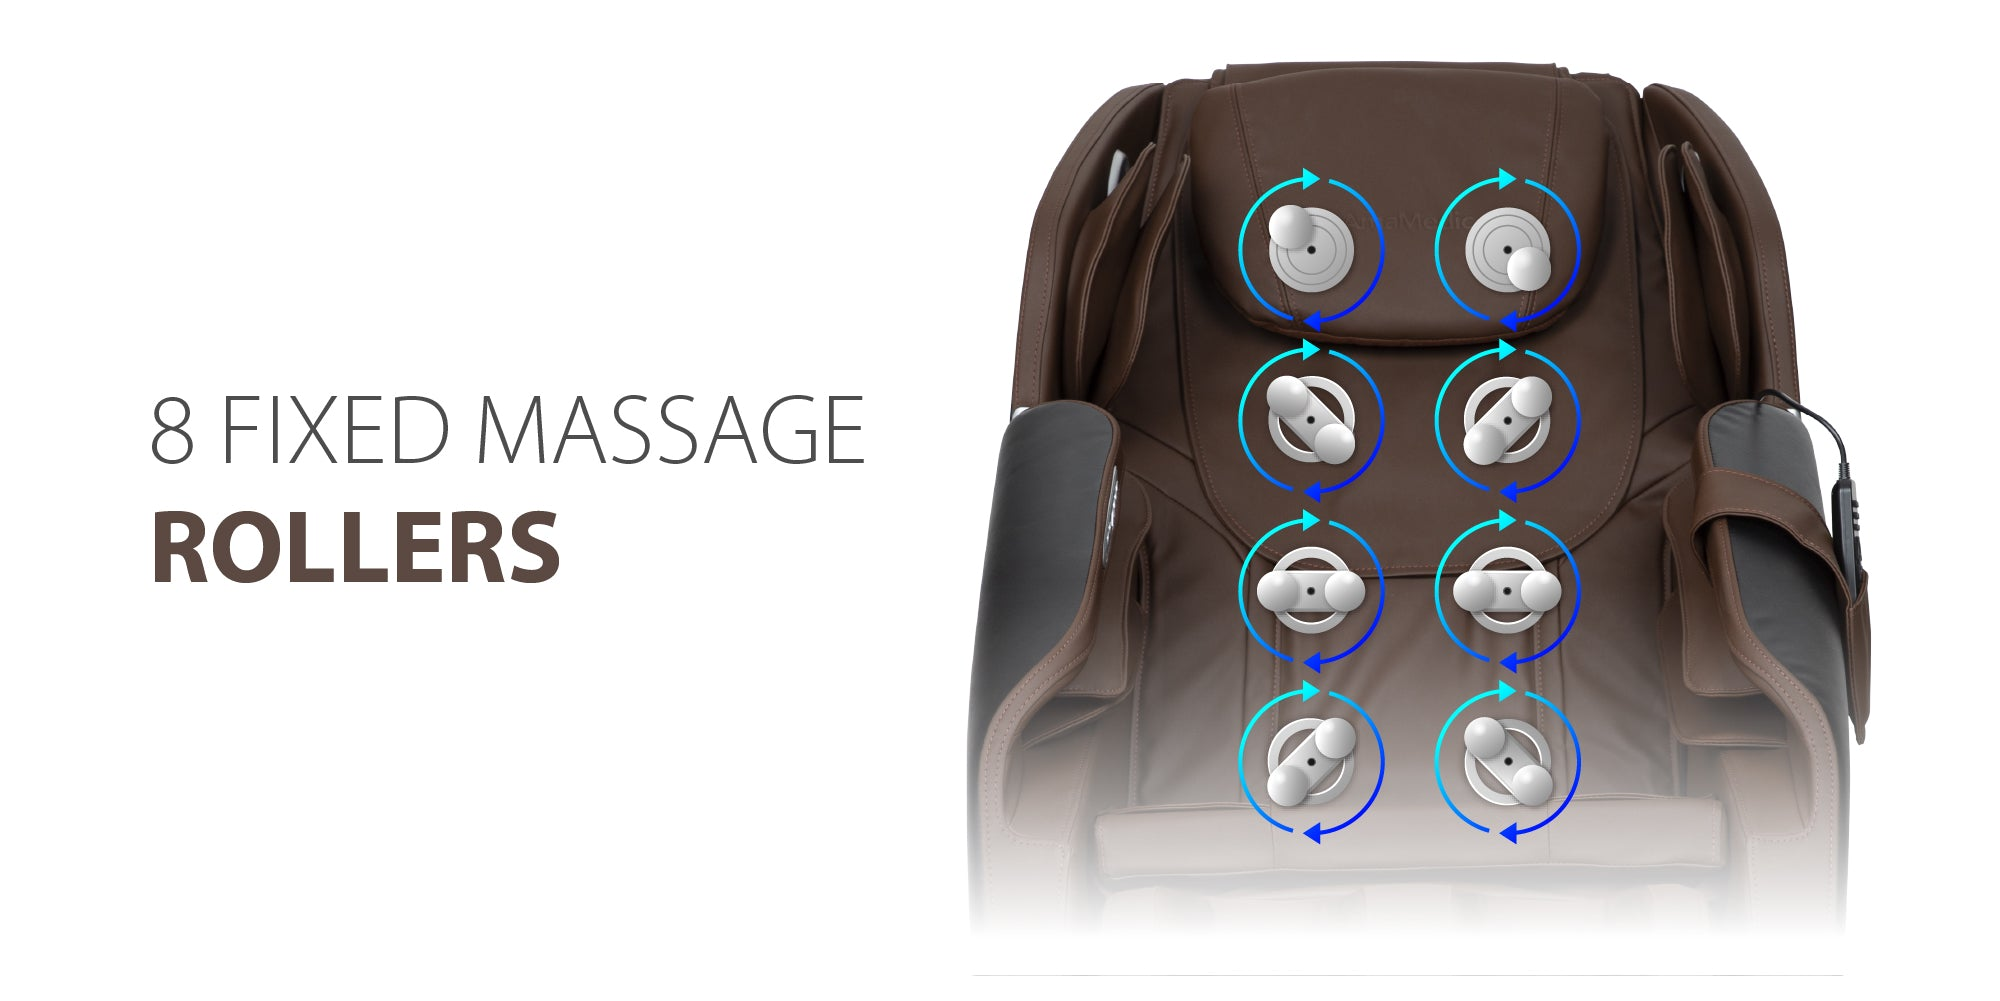 8 Fixed Massage Rollers